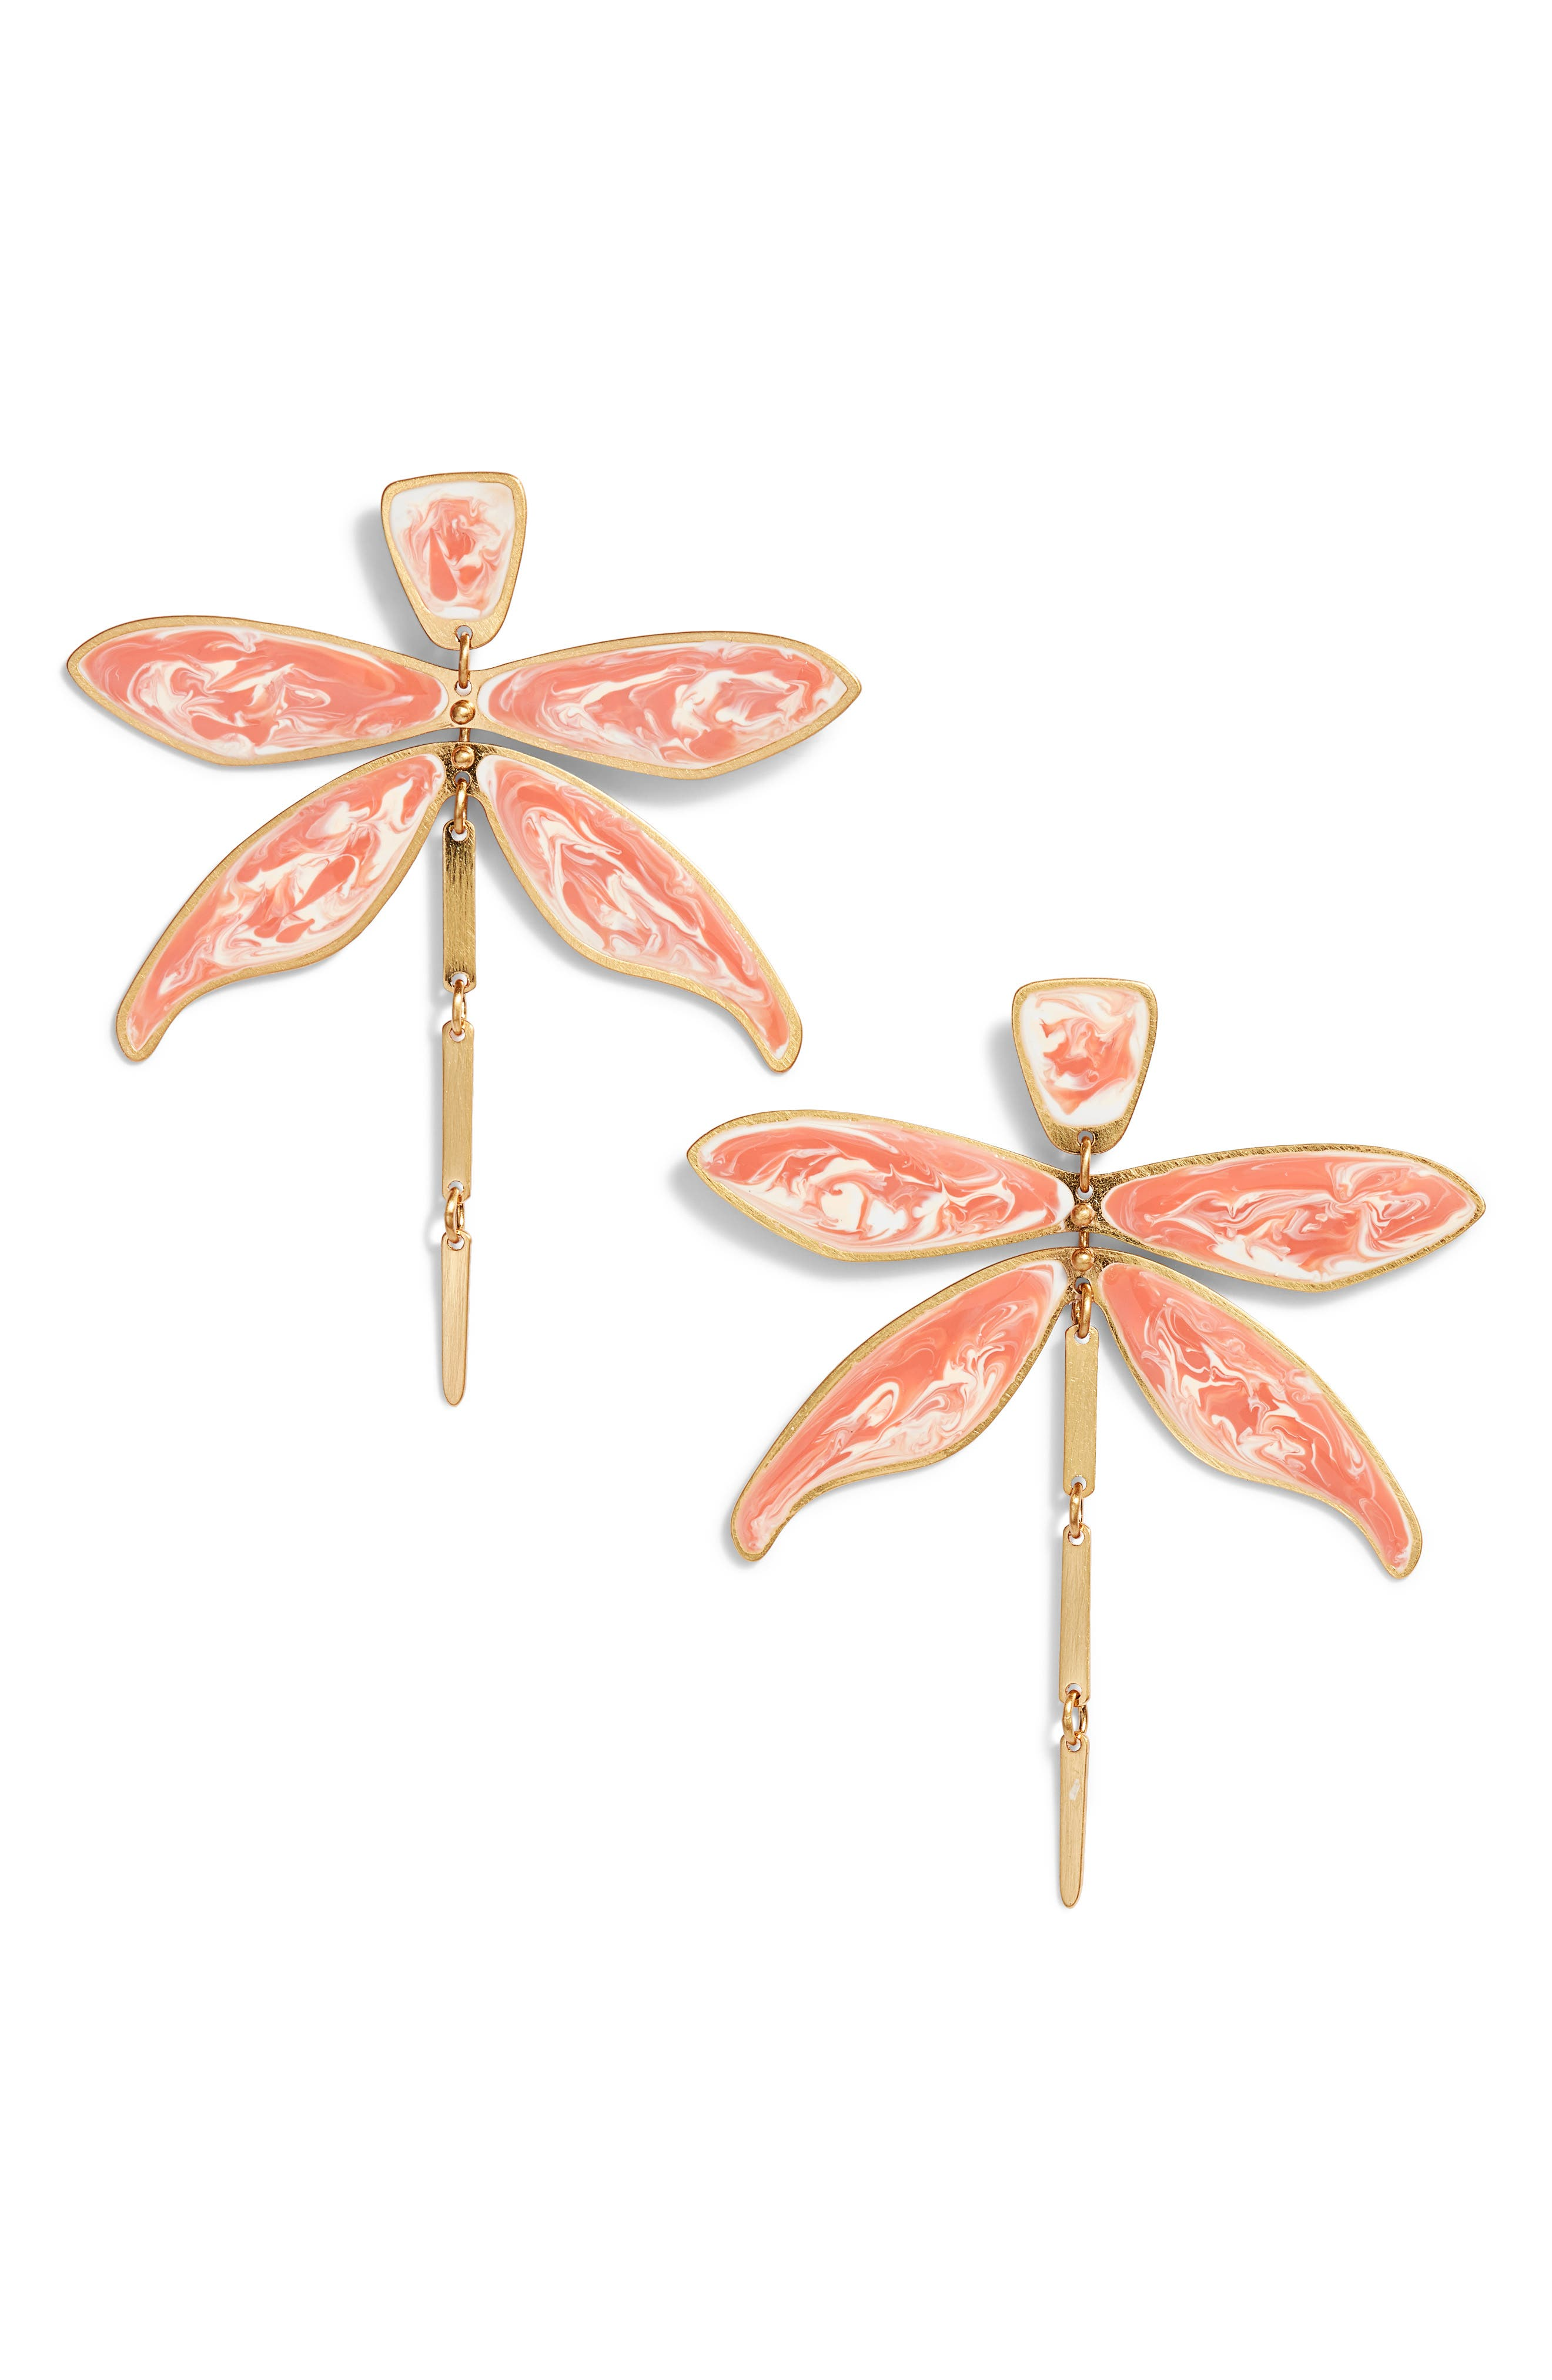 Main Image - Tory Burch Articulated Dragonfly Earrings